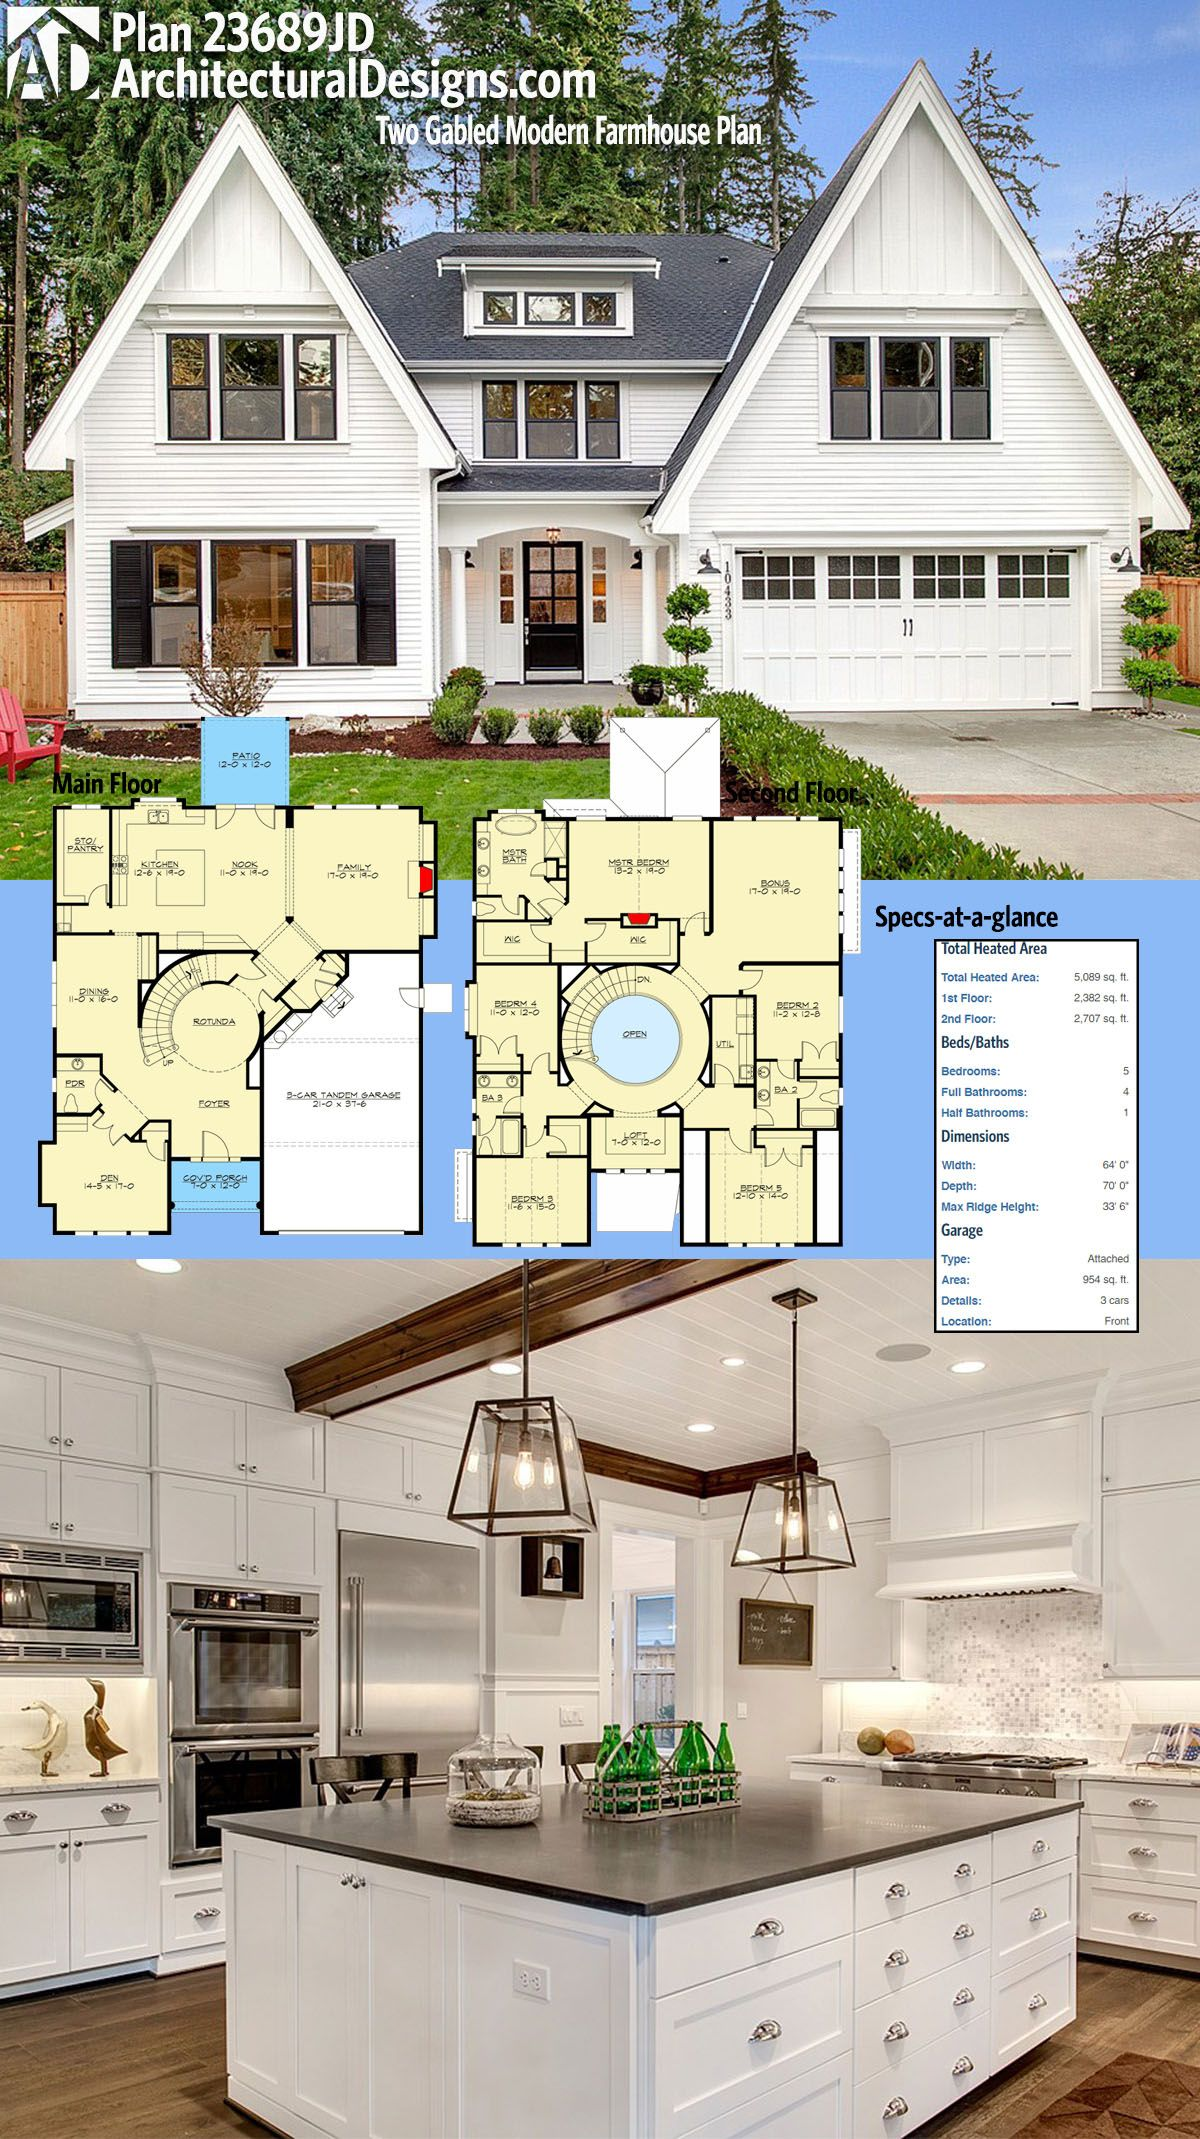 Plan 23689JD Two Gabled Modern Farmhouse Plan Modern